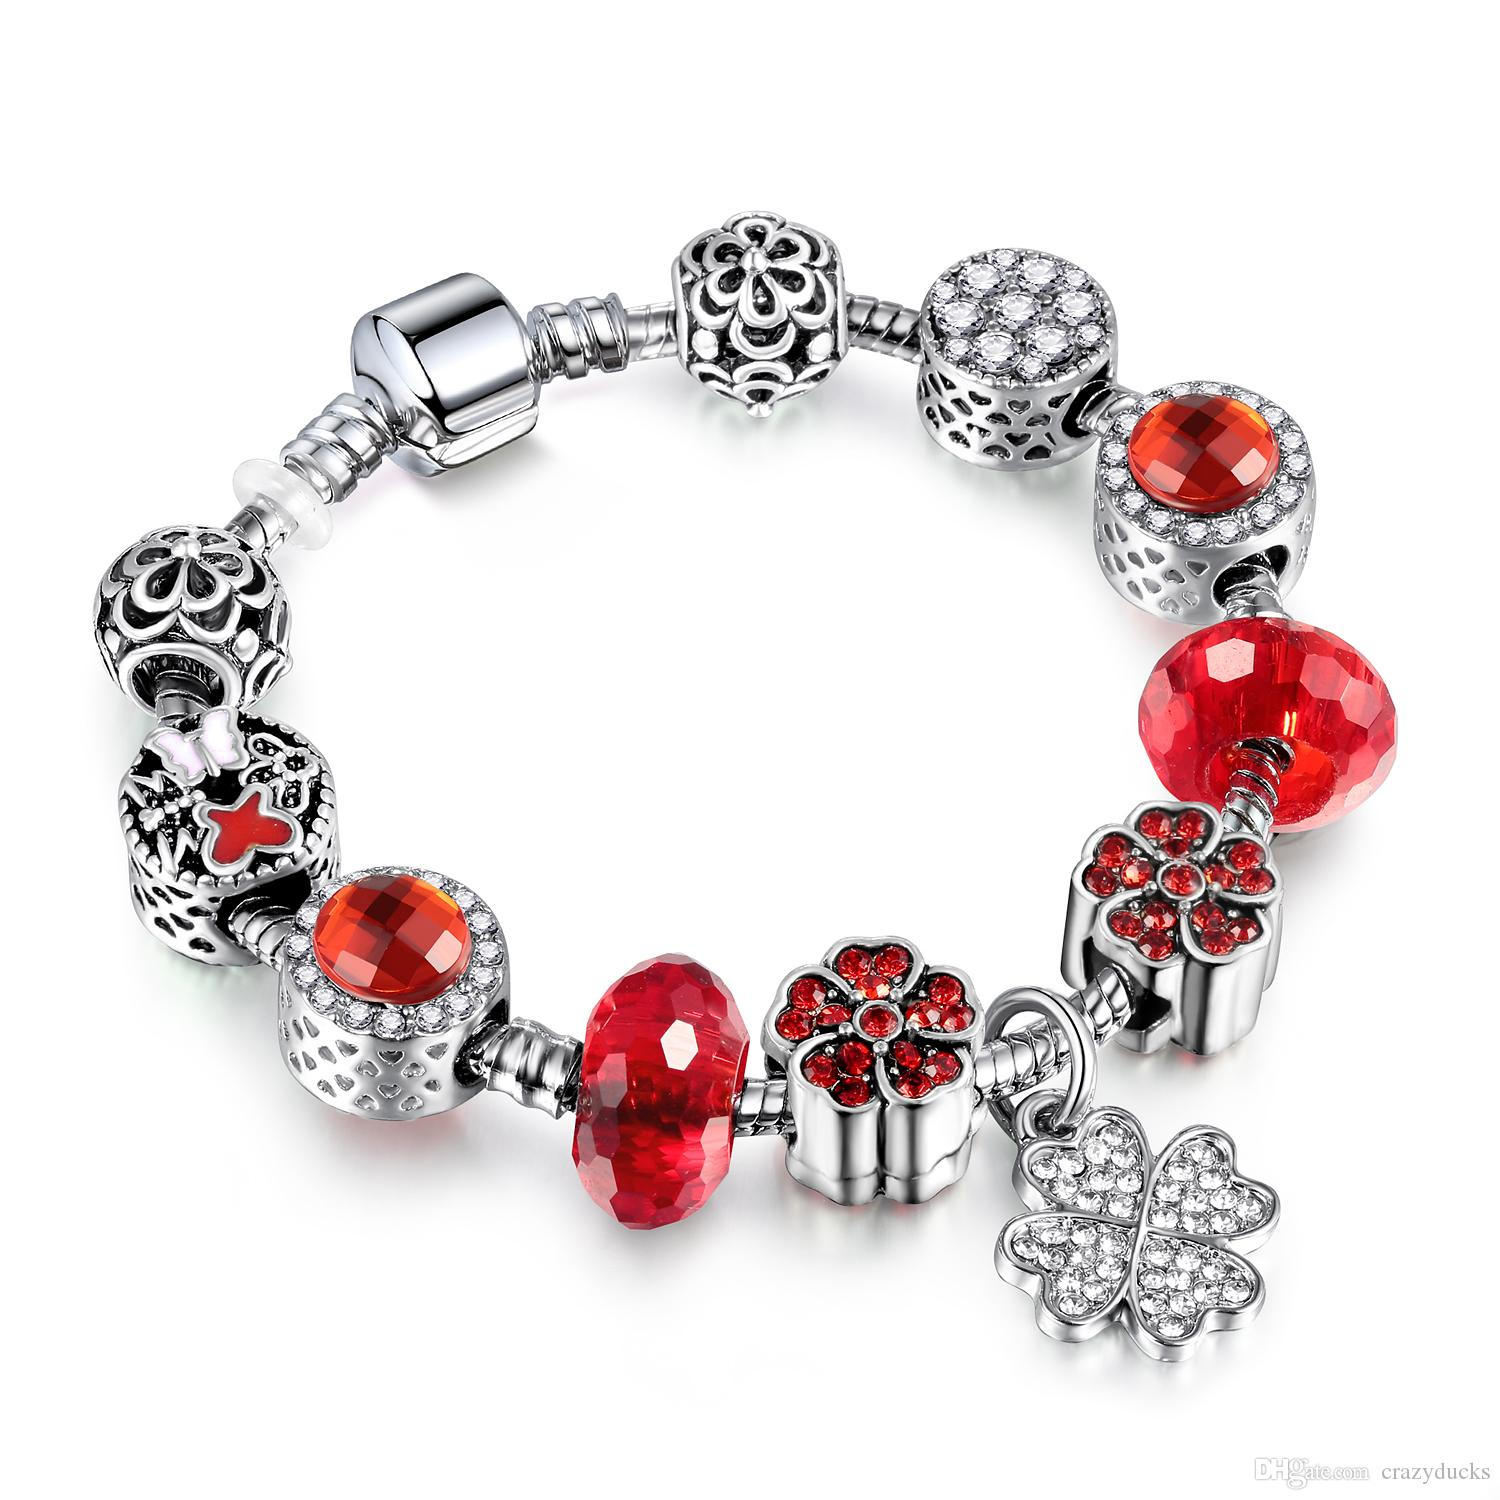 European Silver Bracelet Silver Plated Bead With Red Glass Beads & White Clover Charm Bracelet Women Jewelry AA113